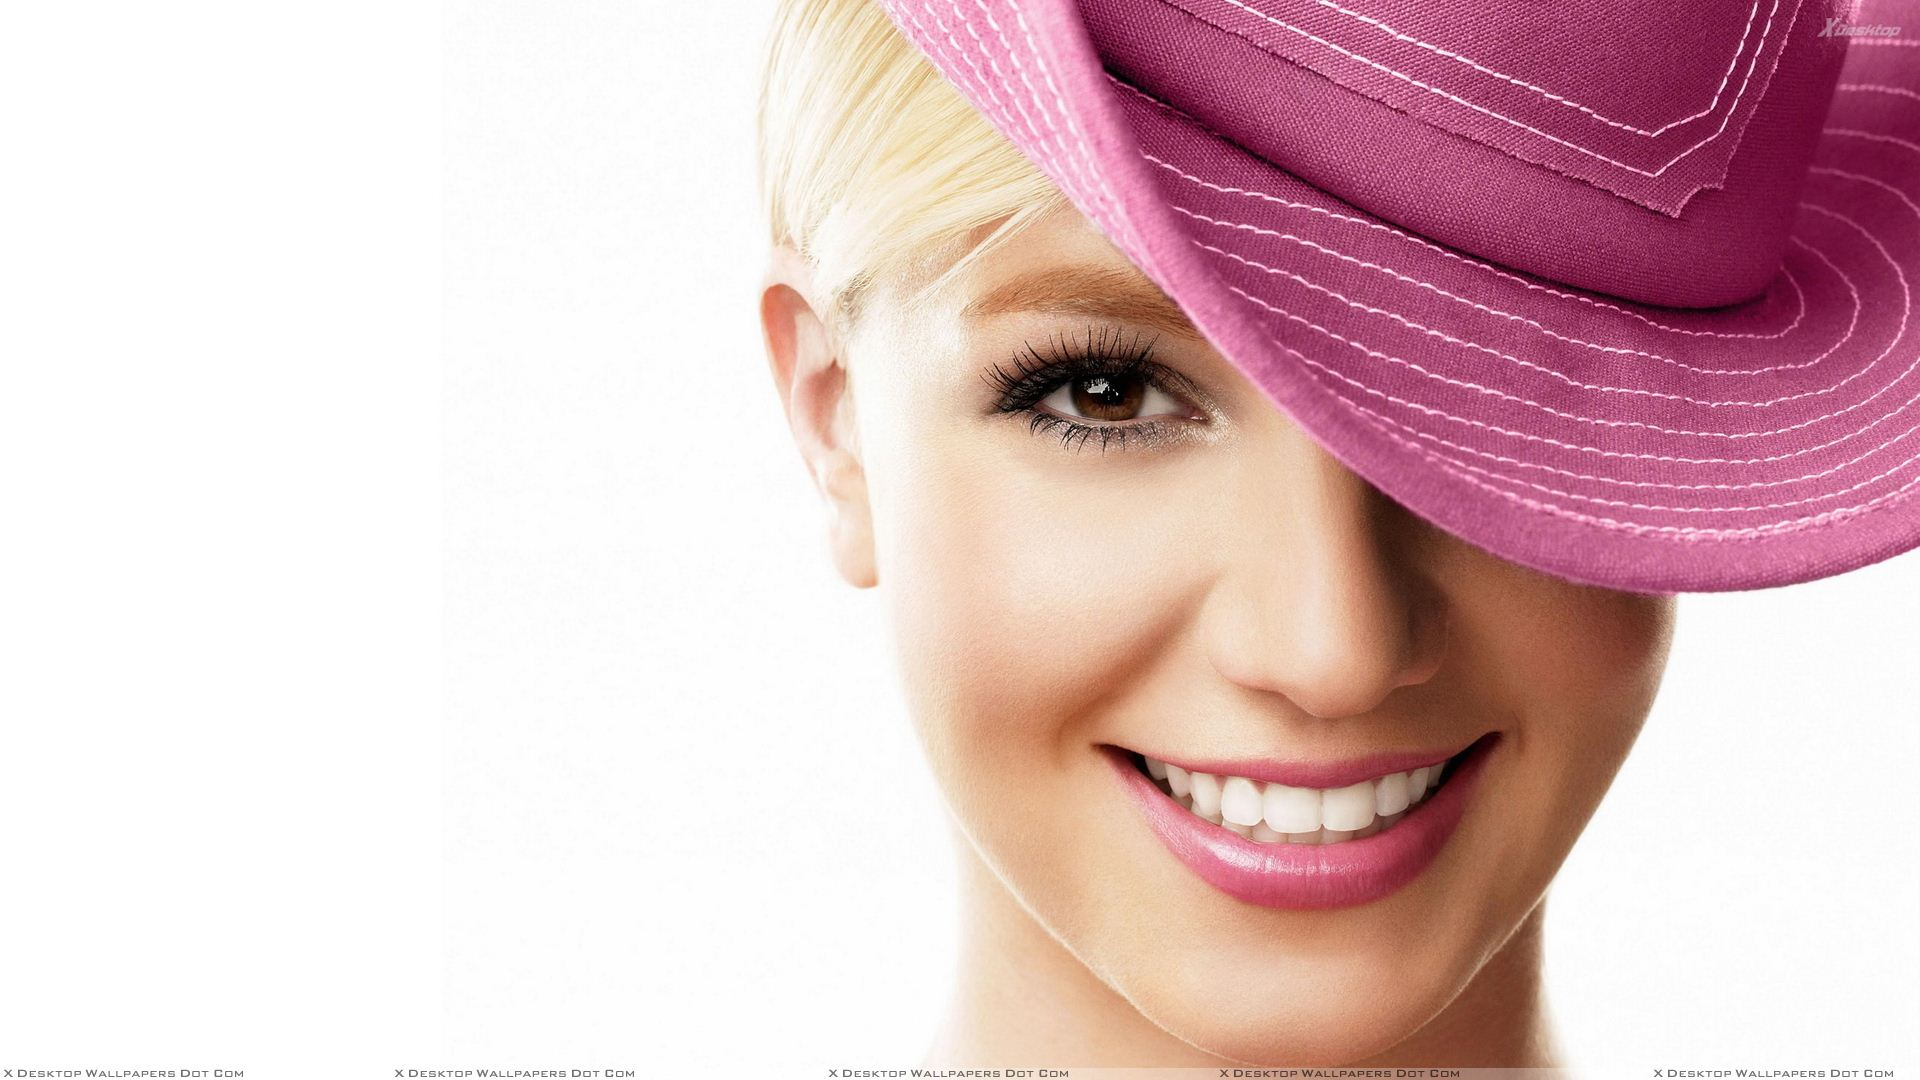 Britney Spears Smiling Pink Lips N Pink Hat Face Closeup